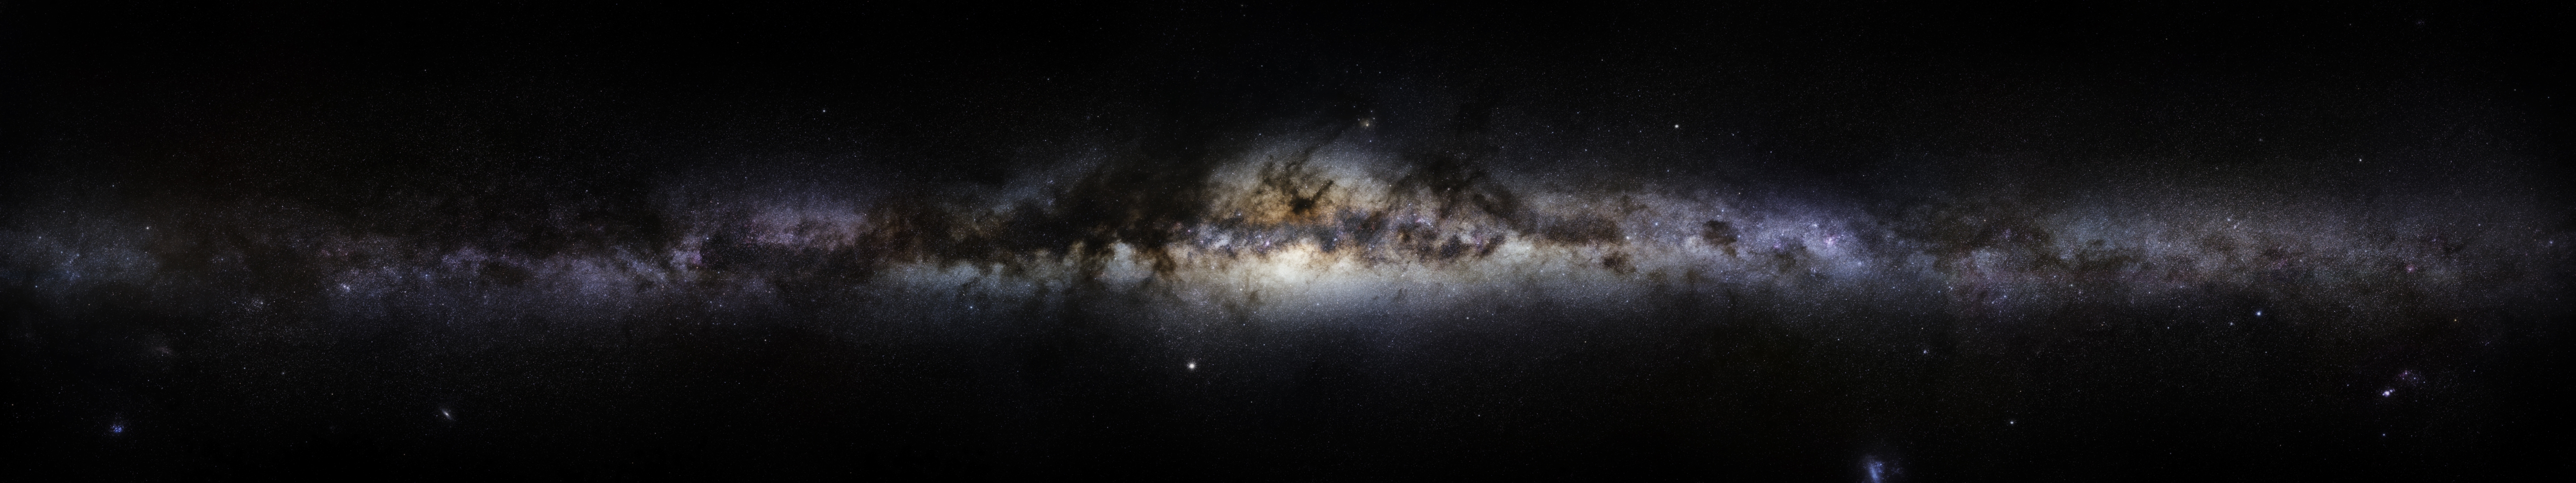 Space Wallpaper 5760x1080